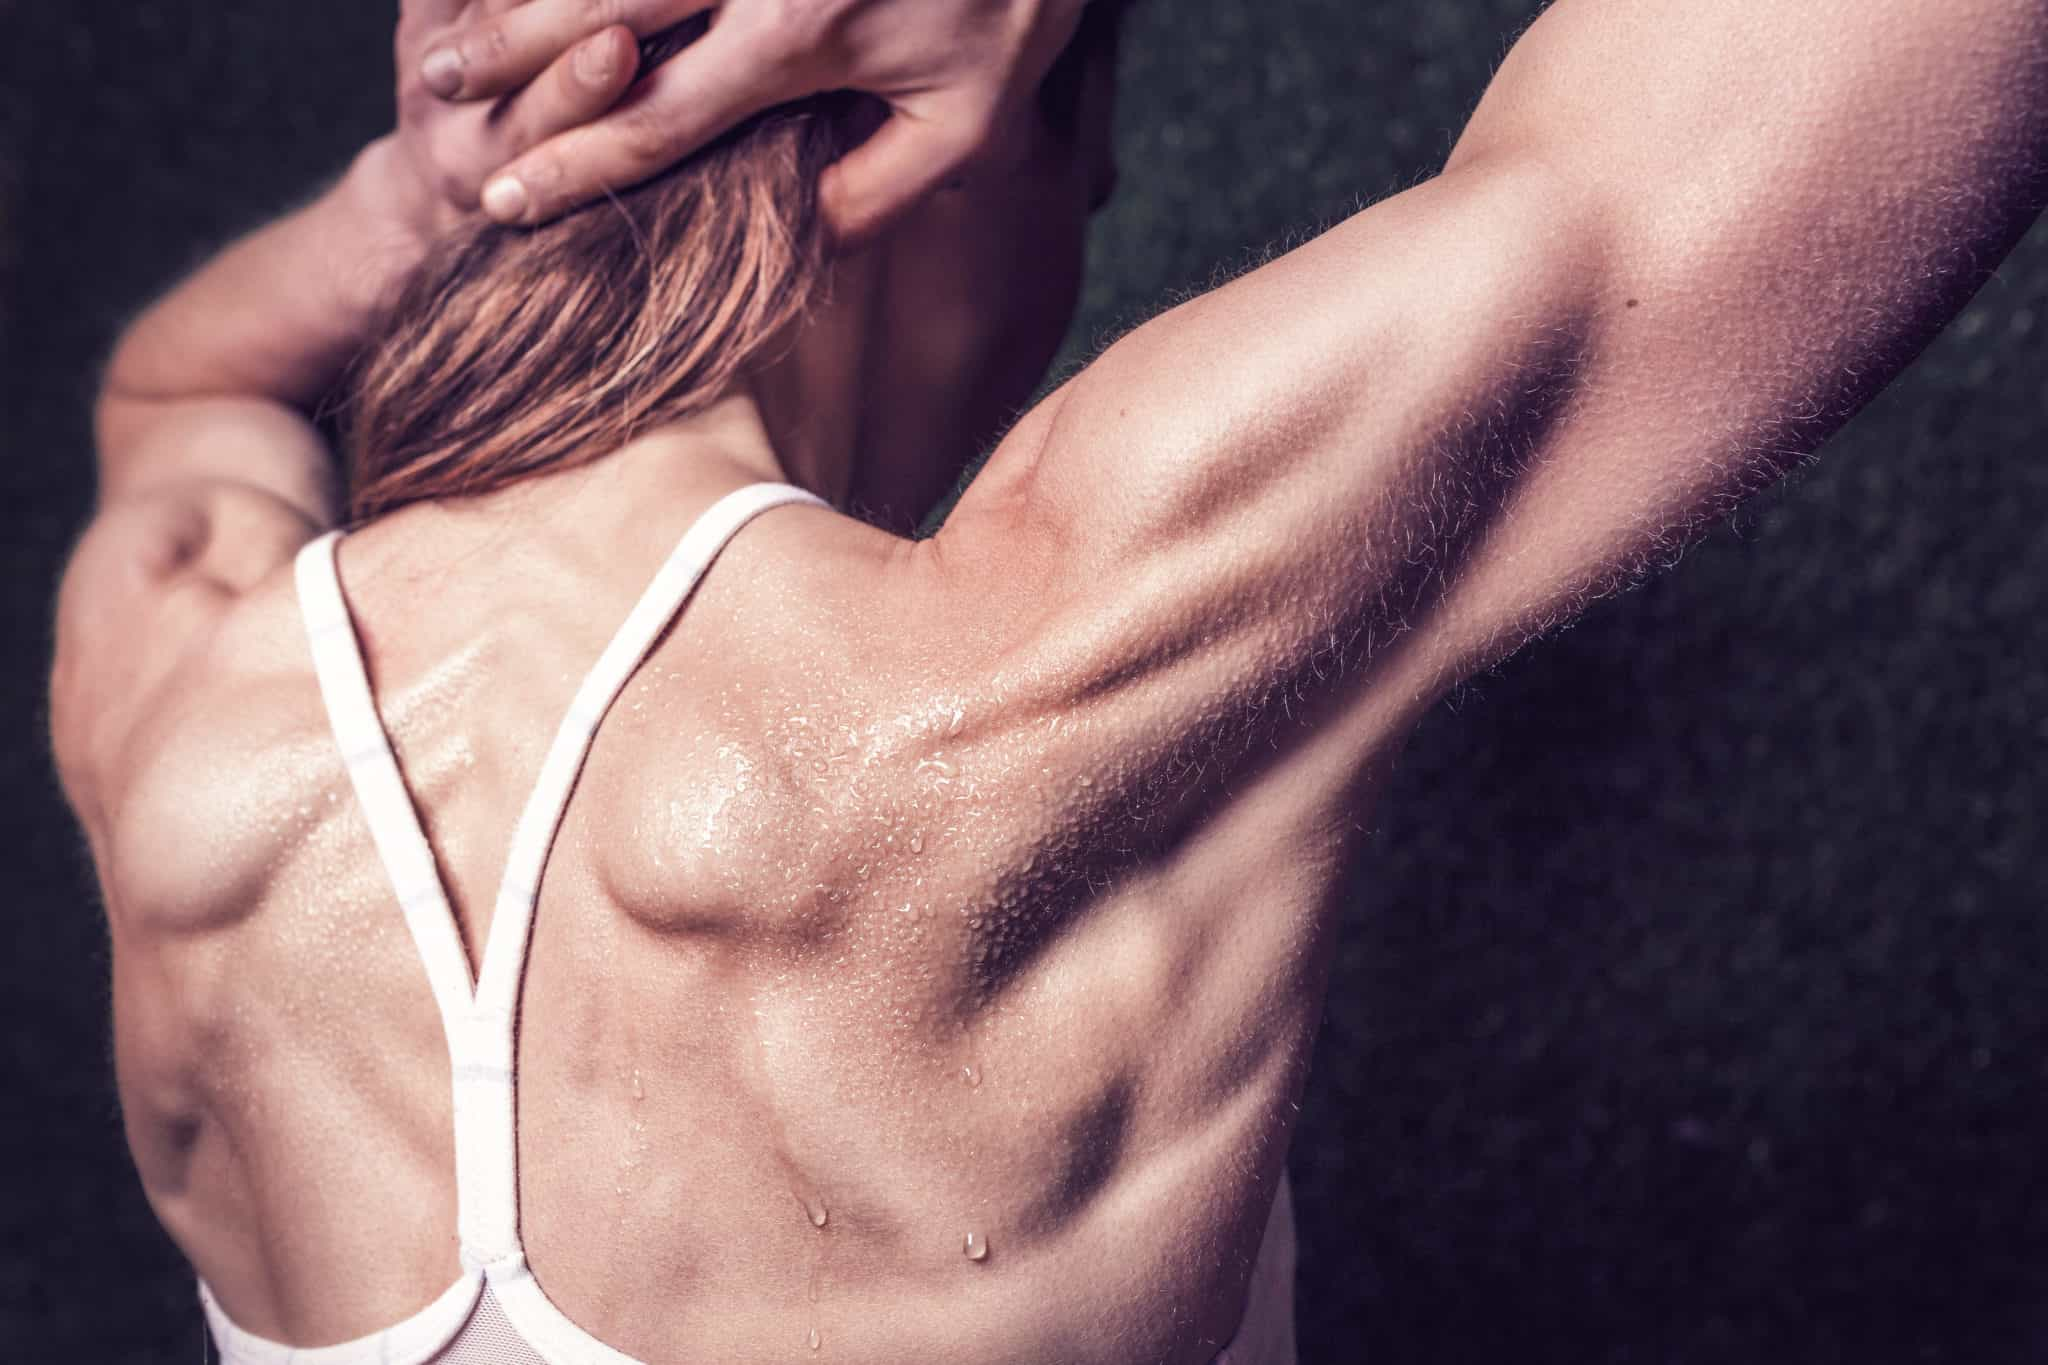 7 Exercises to Get Rid of Shoulder Pain and Build Better Shoulders